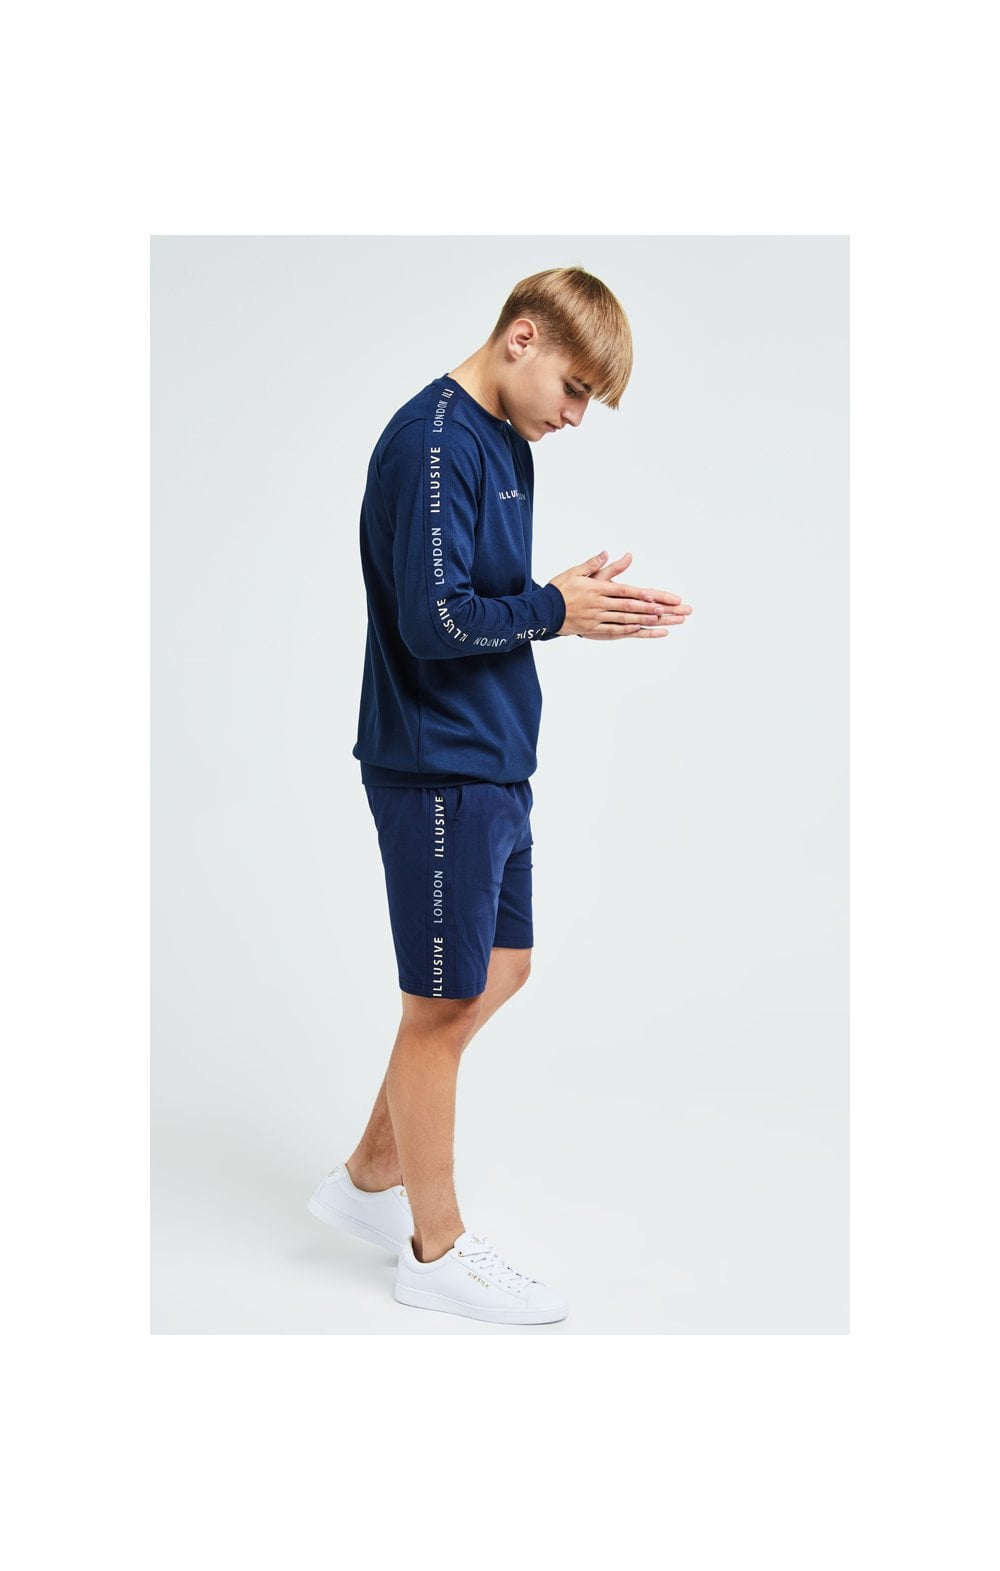 Load image into Gallery viewer, Illusive London Legacy Crew Sweater - Navy & Cream (4)